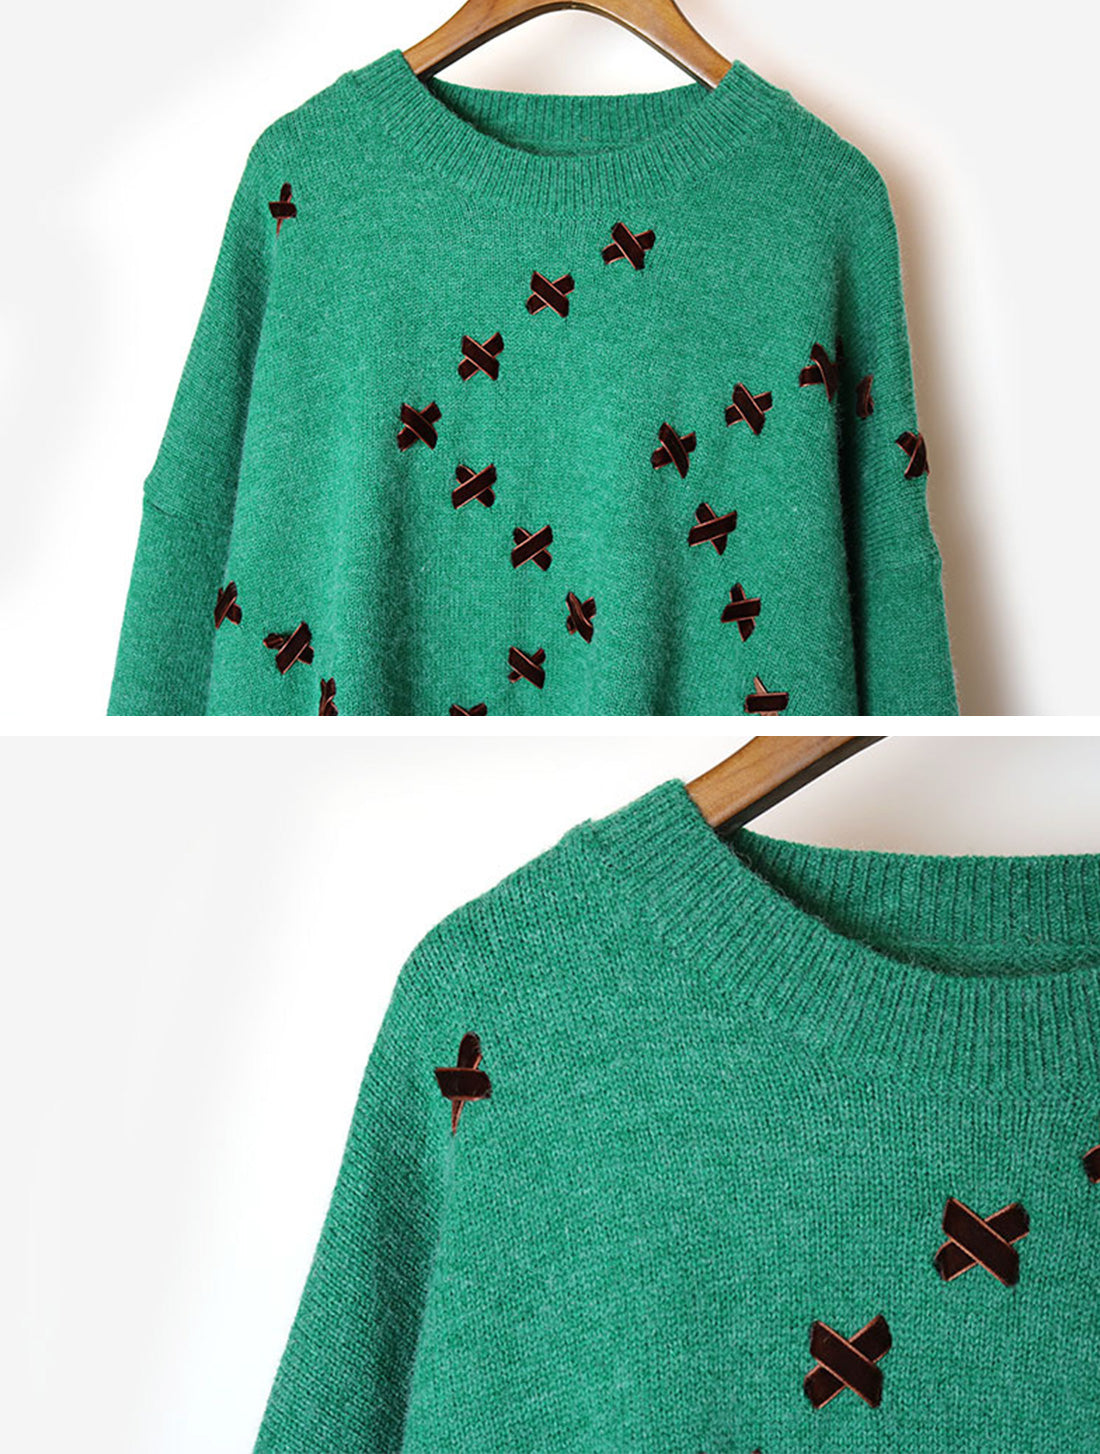 Daily Luxe Green Sweater Top Details 1